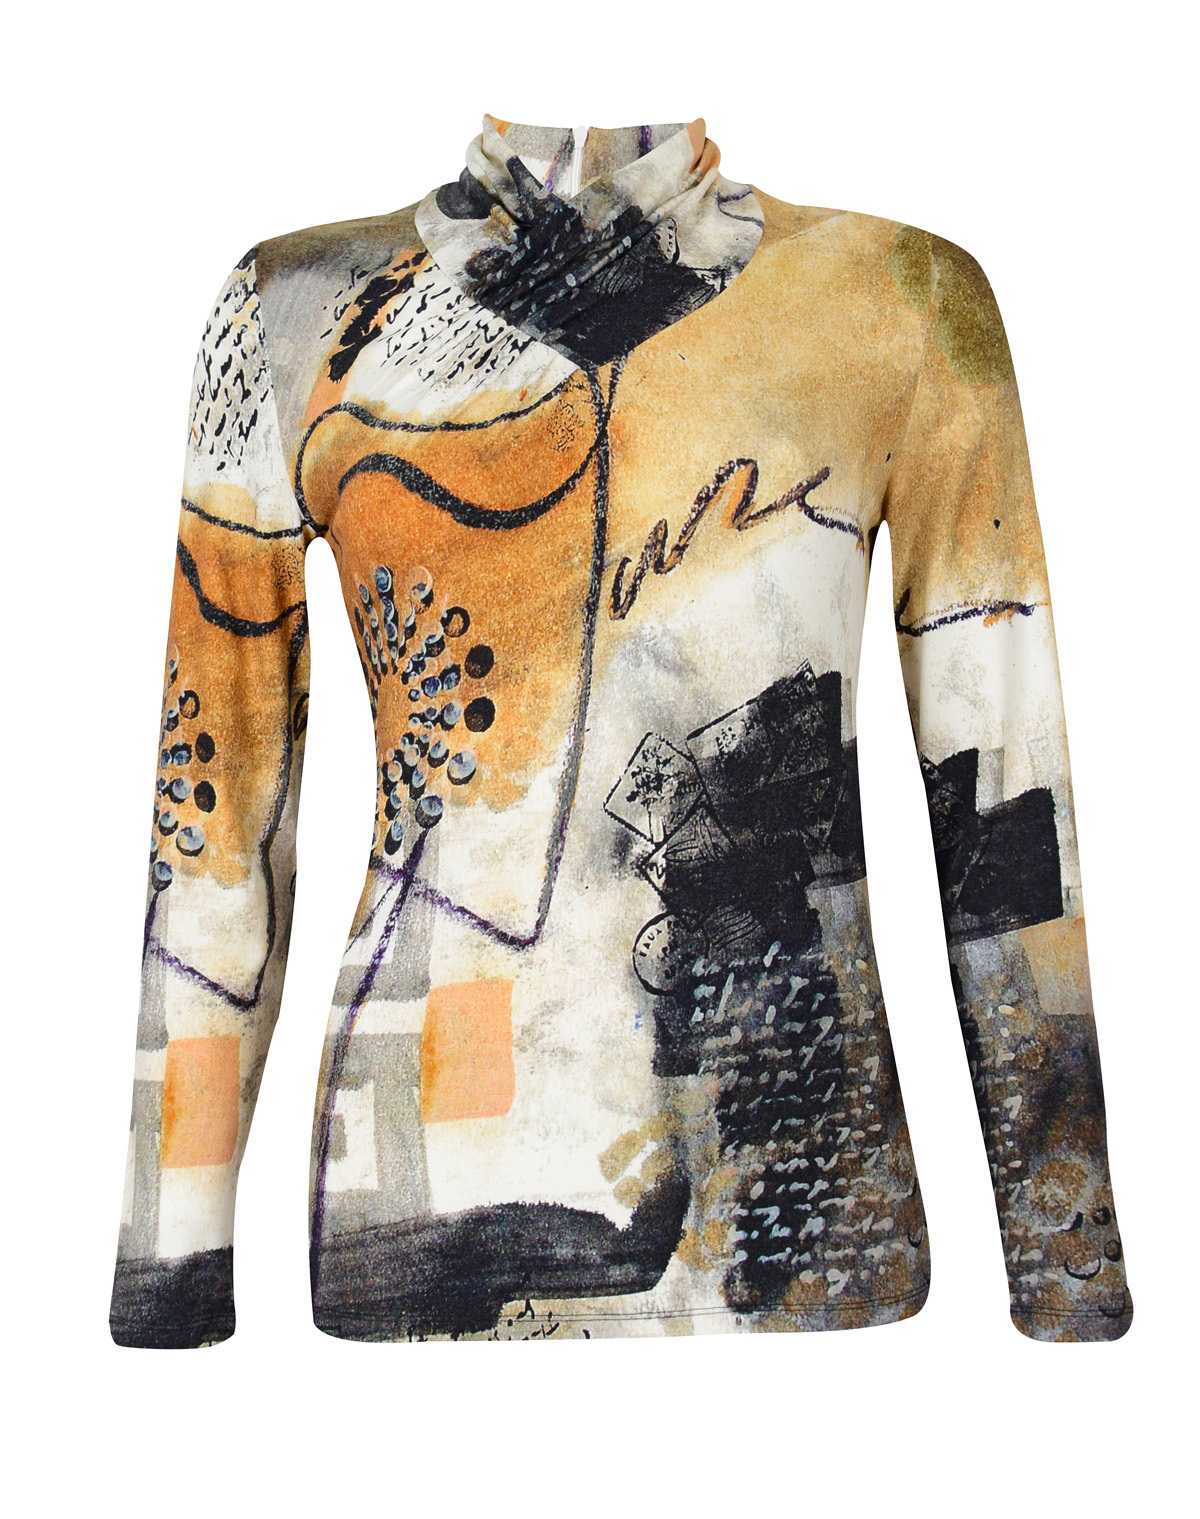 Simply Art Dolcezza: Romantic Rhythm Quilled Abstract Art Tunic (2 Left!) Dolcezza_SimplyArt_59602